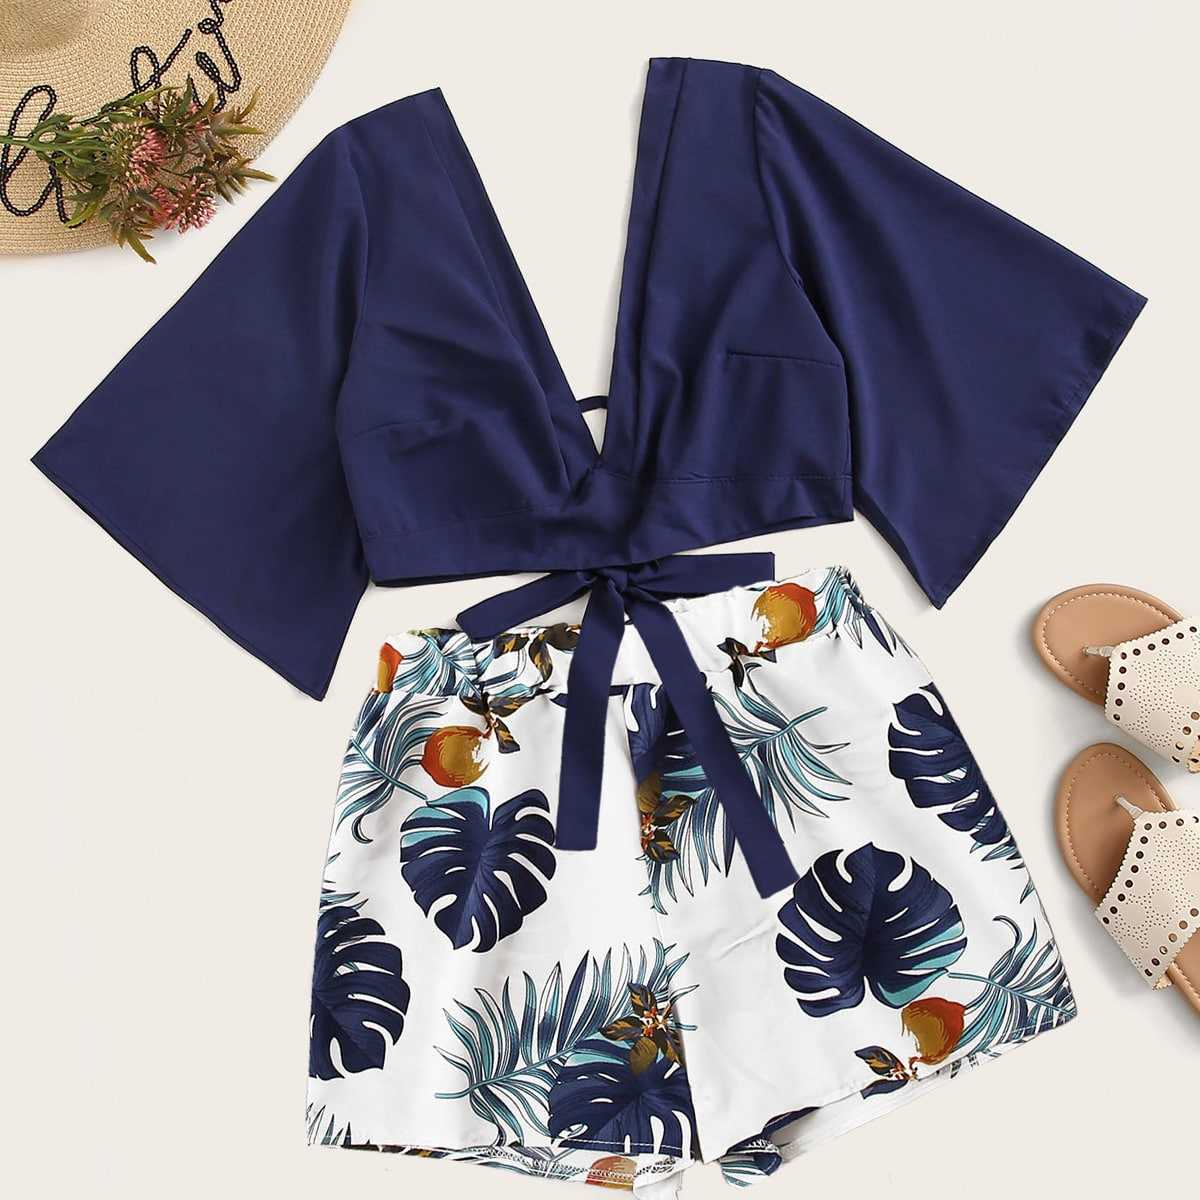 Tie Back Plunging Neck Top & Tropical Print Shorts in Multicolor by ROMWE on GOOFASH